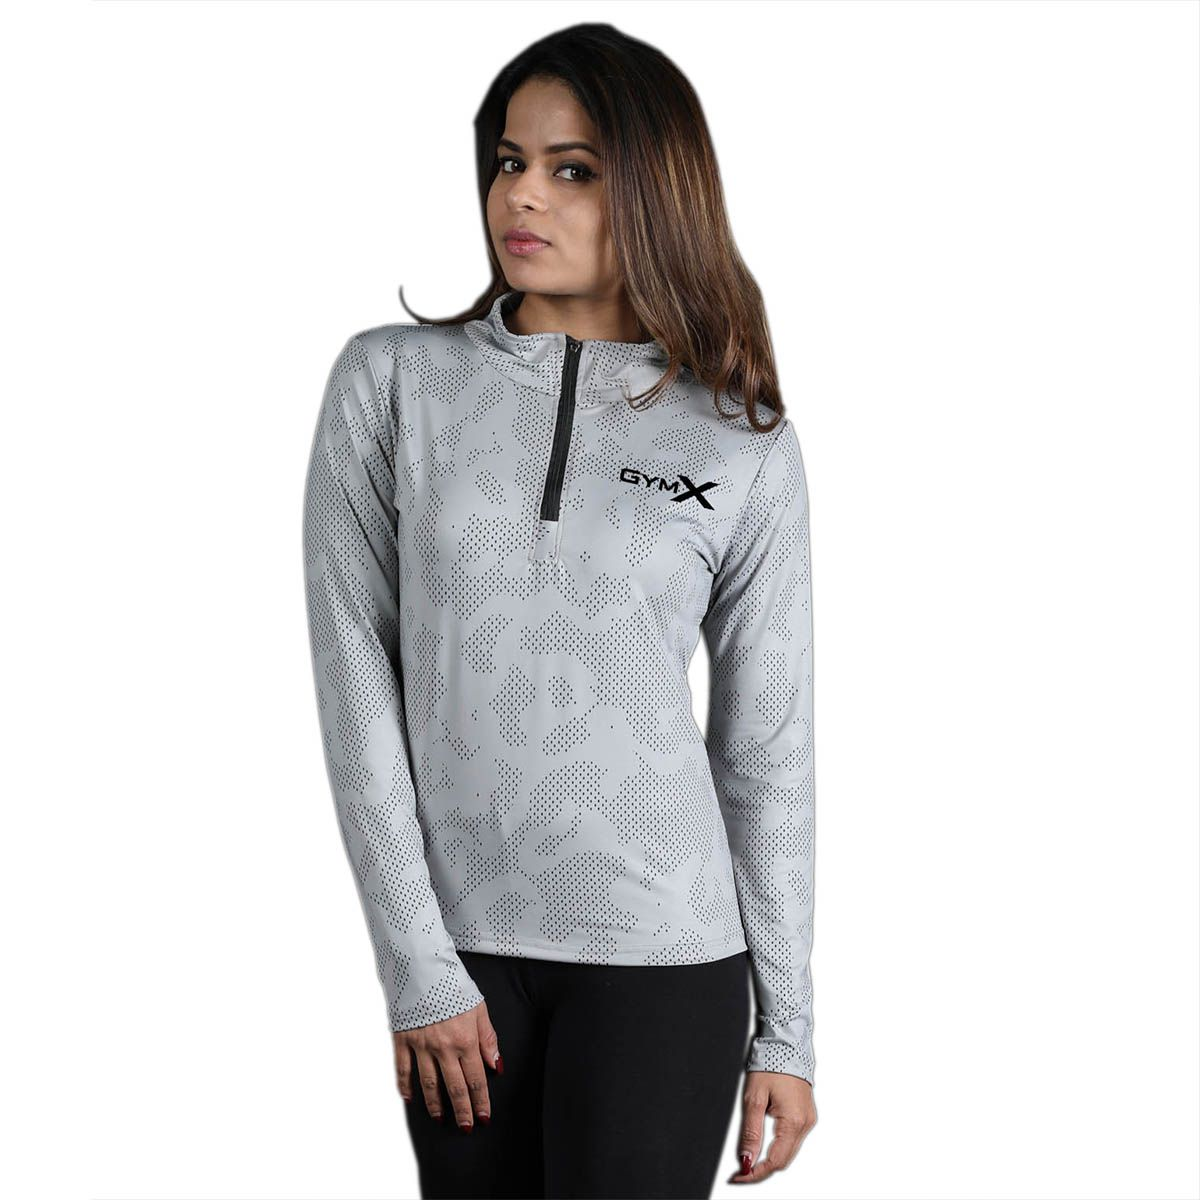 GymX Womens Cloud Grey 1/4th Zip Pullover- Athena Series Jacket (Size:Large)